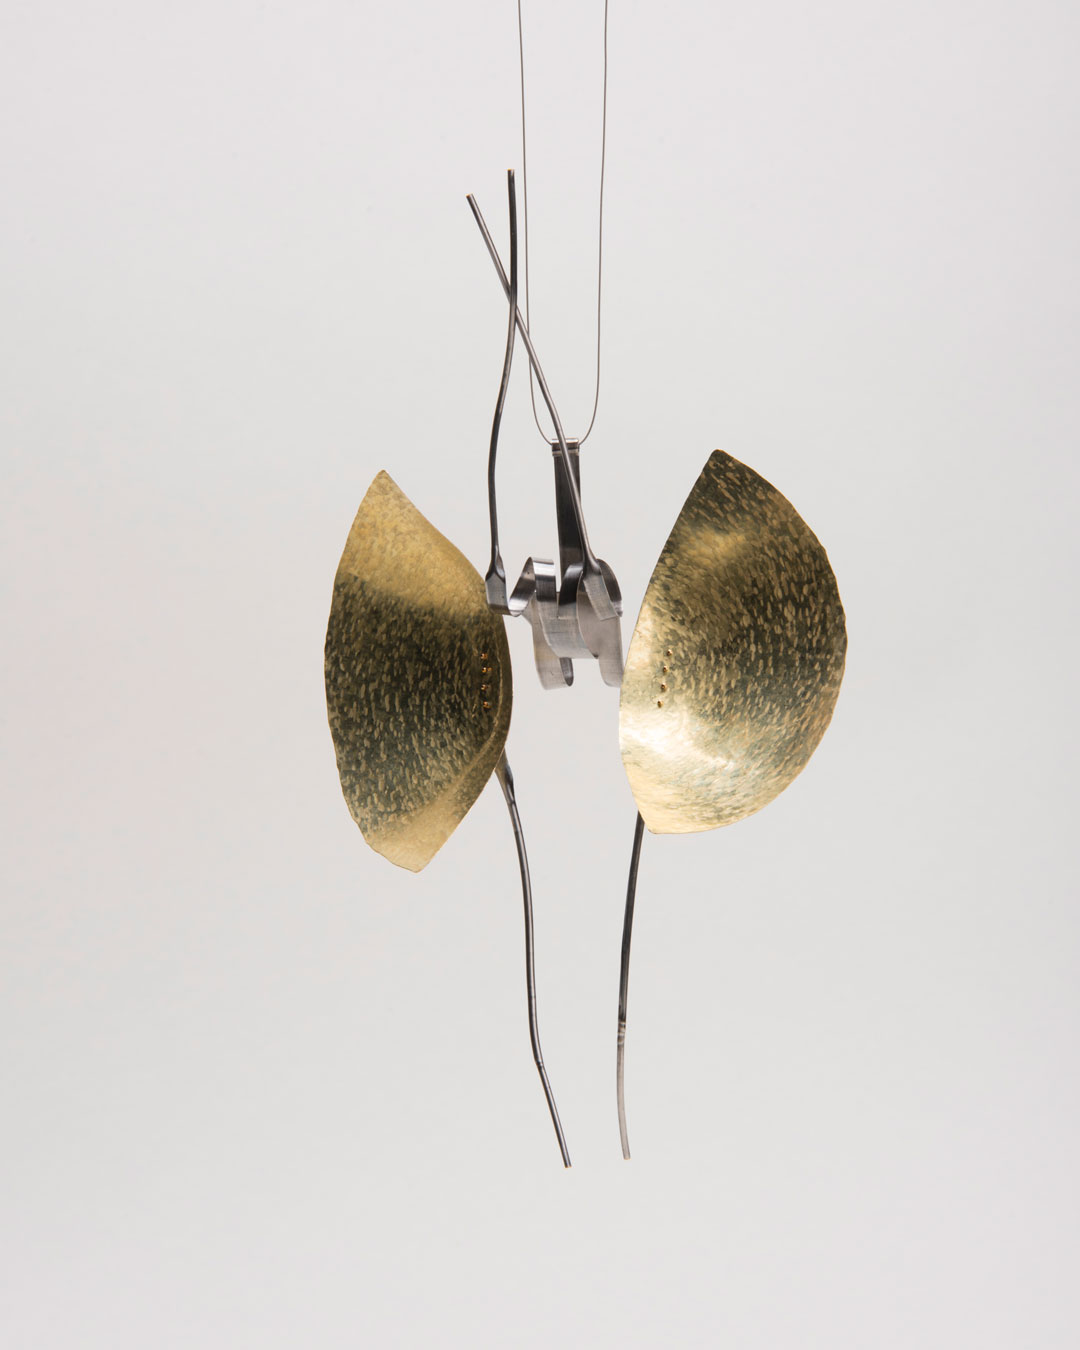 Andrea Wippermann, Mantis Religiosa, 2018, pendant; gold, stainless steel, blackened silver, nylon, 220 x 140 x 80 mm, €4600